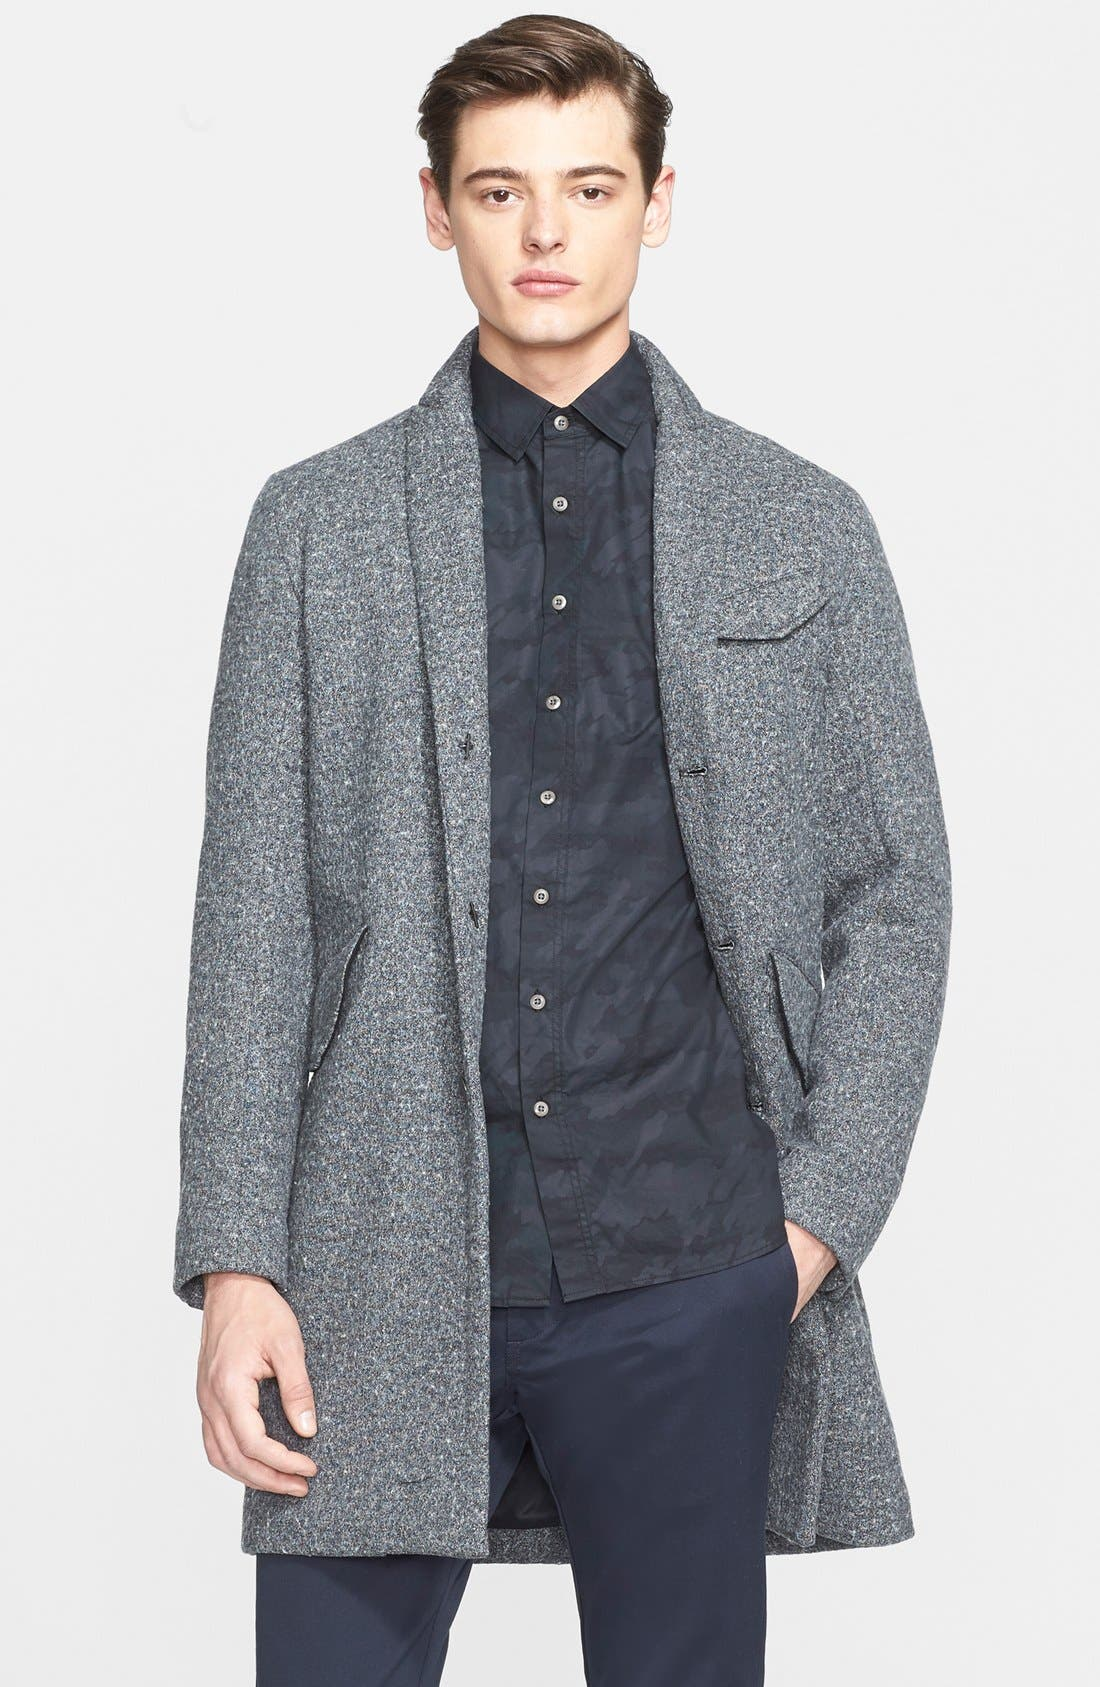 WINGS + HORNS Cotton Blend Topcoat, Main, color, 020